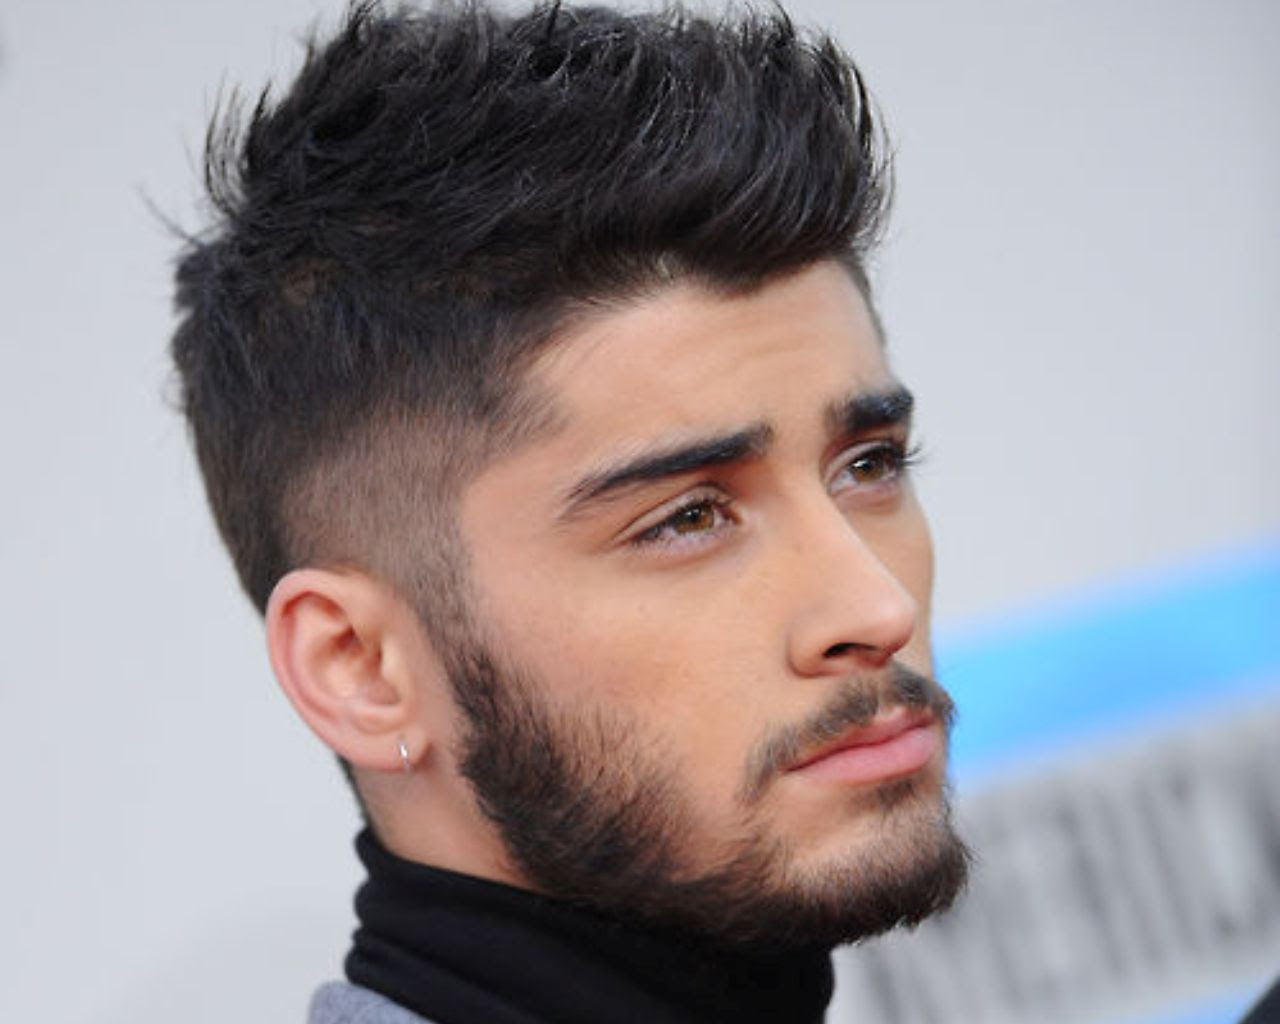 Hairstyles For Zayn Malik Tops 2016 Hairstyle